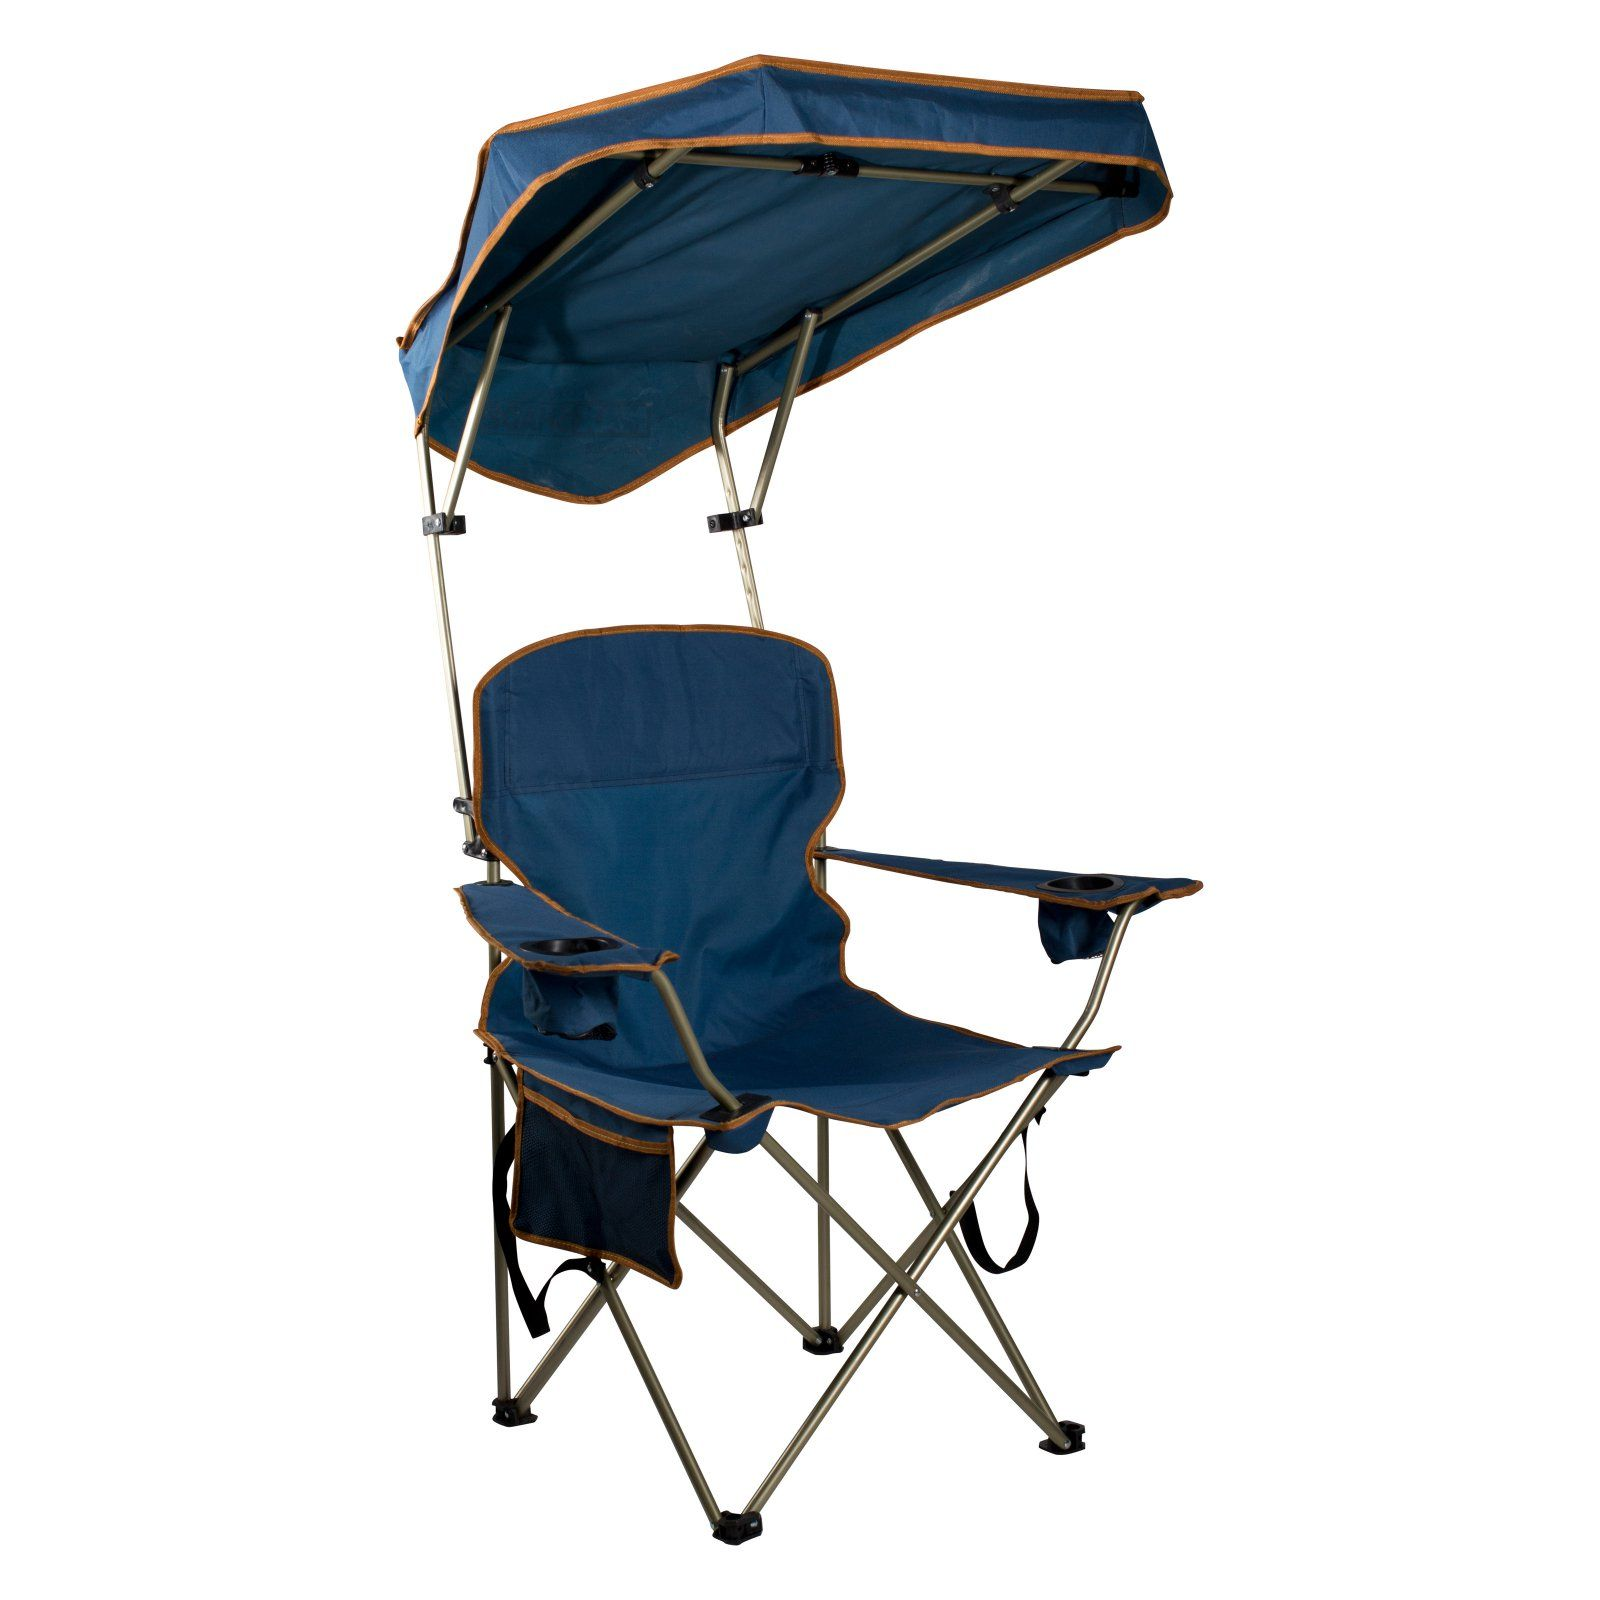 Kelsyus Original Canopy Chair with Bug Net, Gray Camping